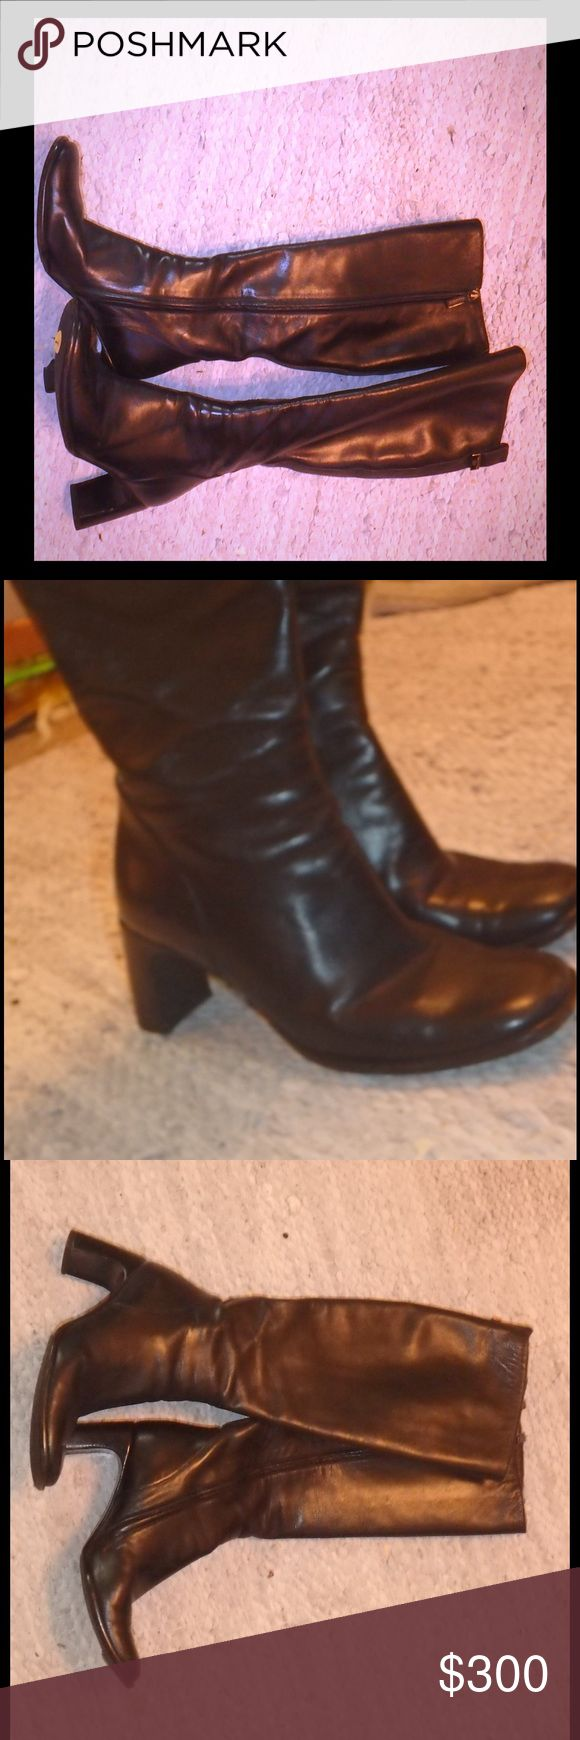 Gucci boots! Authentic black leather tall boots! These are authentic, no box size 7.5 with Gucci metal plate logo above back zipper. Heels are black wood, and unique. The toes are slightly squared off. They are simply stunning. More info and pics to come... I wanted to list these ASAP before I can do more research and post better pics. Today only I am pricing them super low due to the lack of info... the price will go up as soon as I get better pics and post more info so take advantage of…